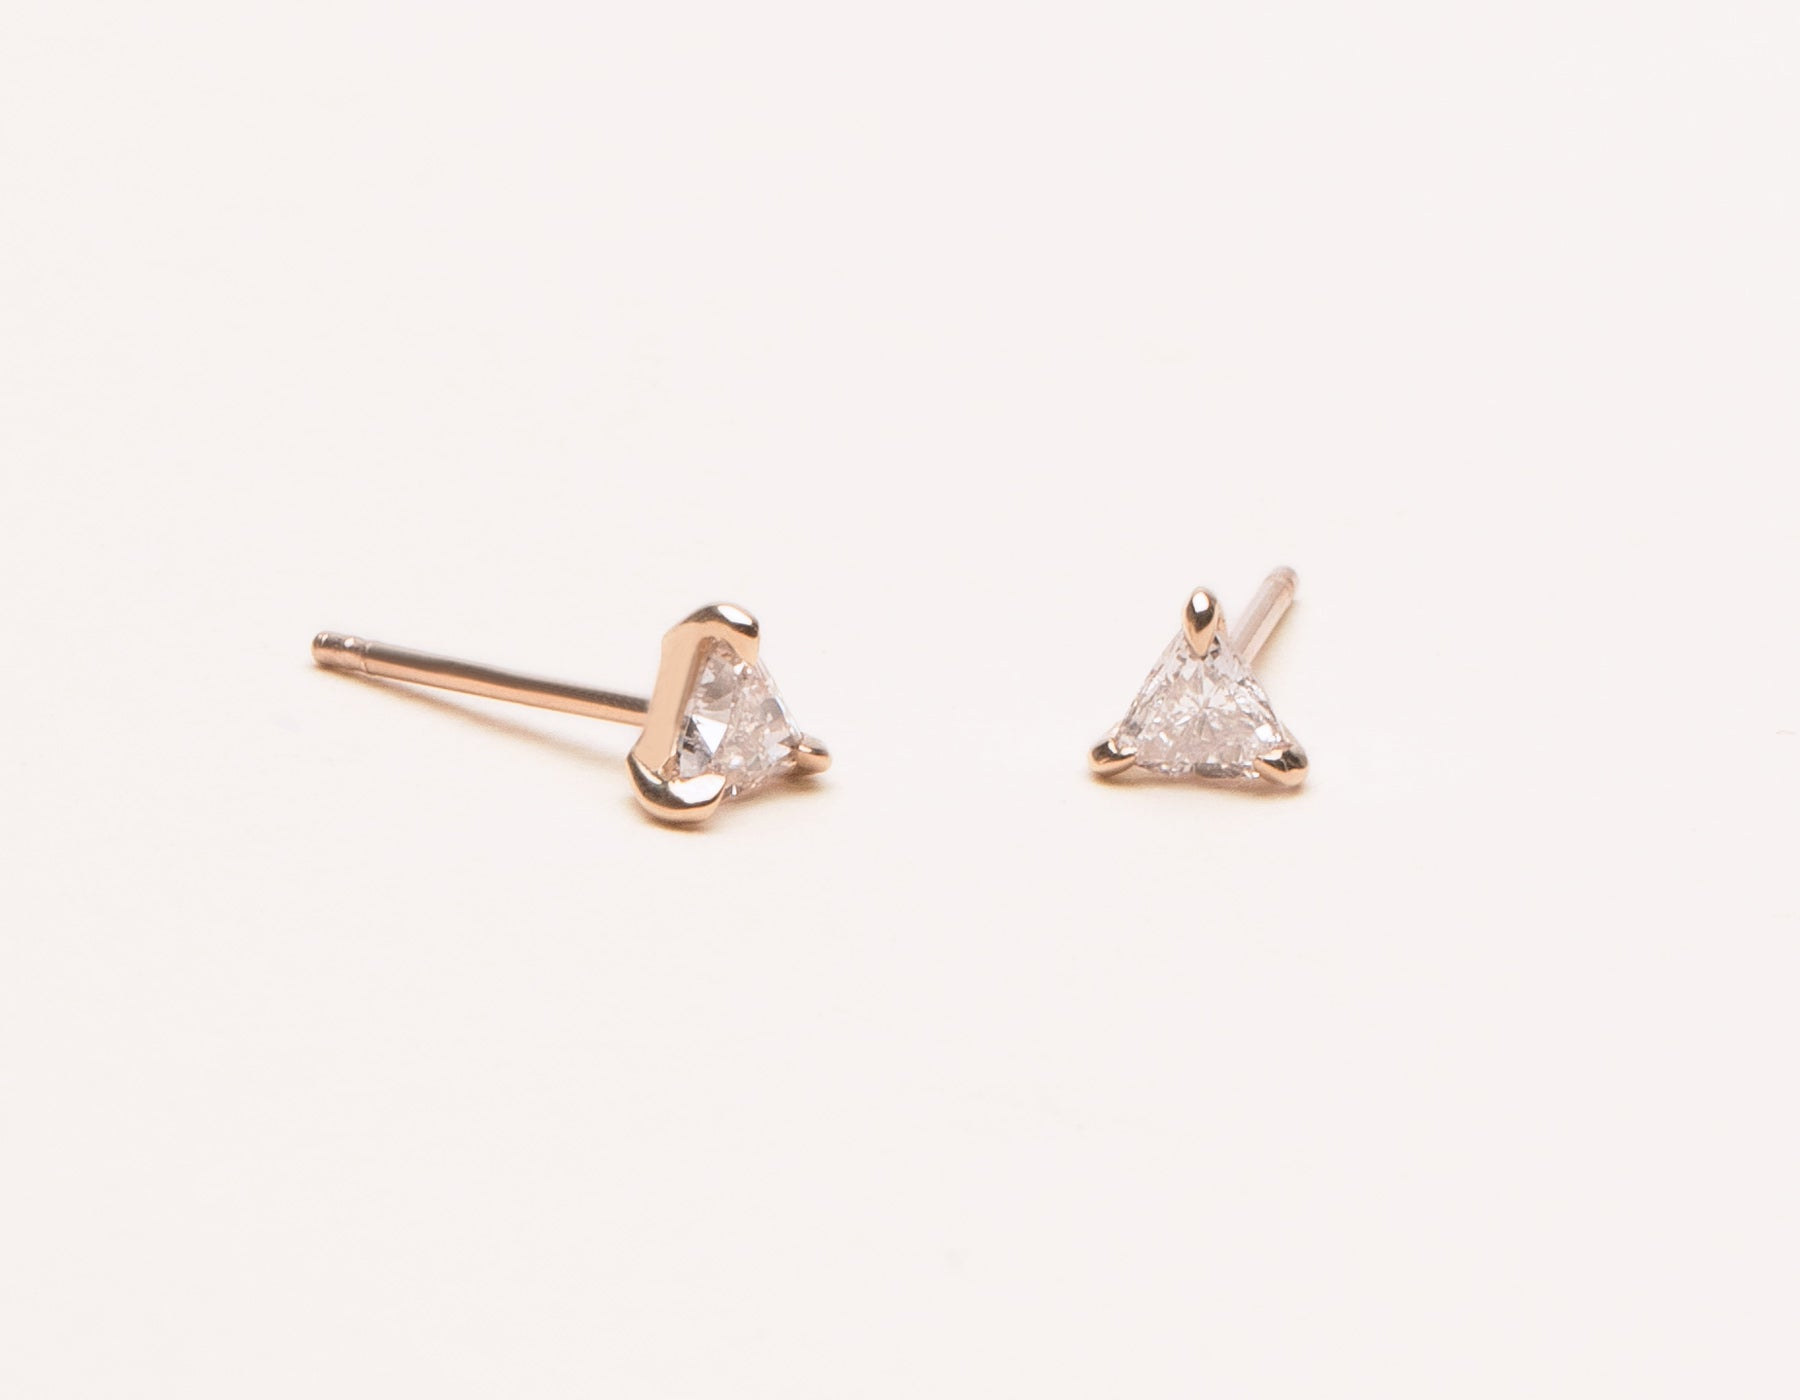 steel earrings simple square gold delicate handmade bar stainless rose rbvahfboo studs minimalist staple stud earring product